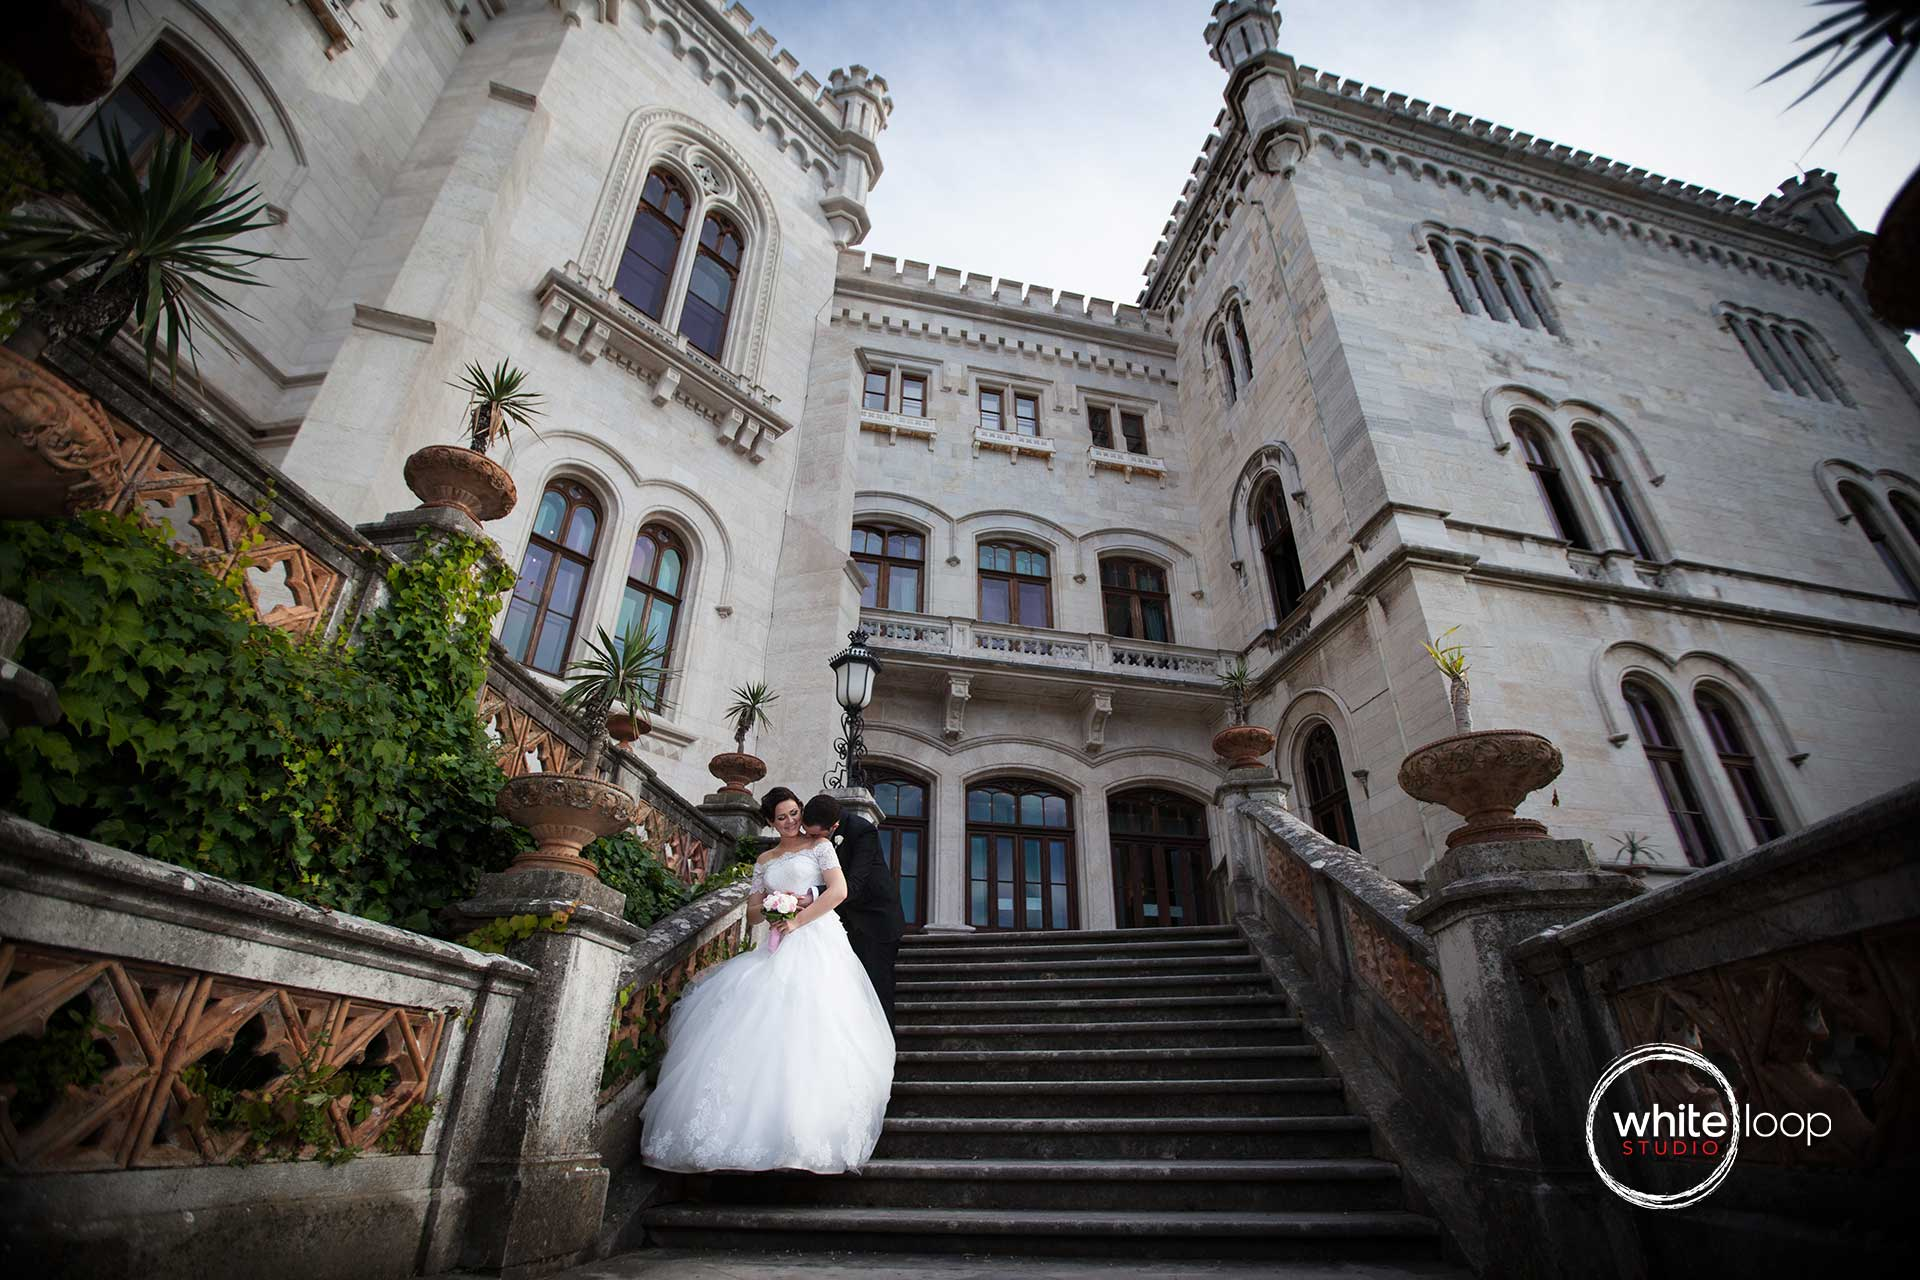 The bride and groom are holding each other with love outside of the Miramare Castle in Italy